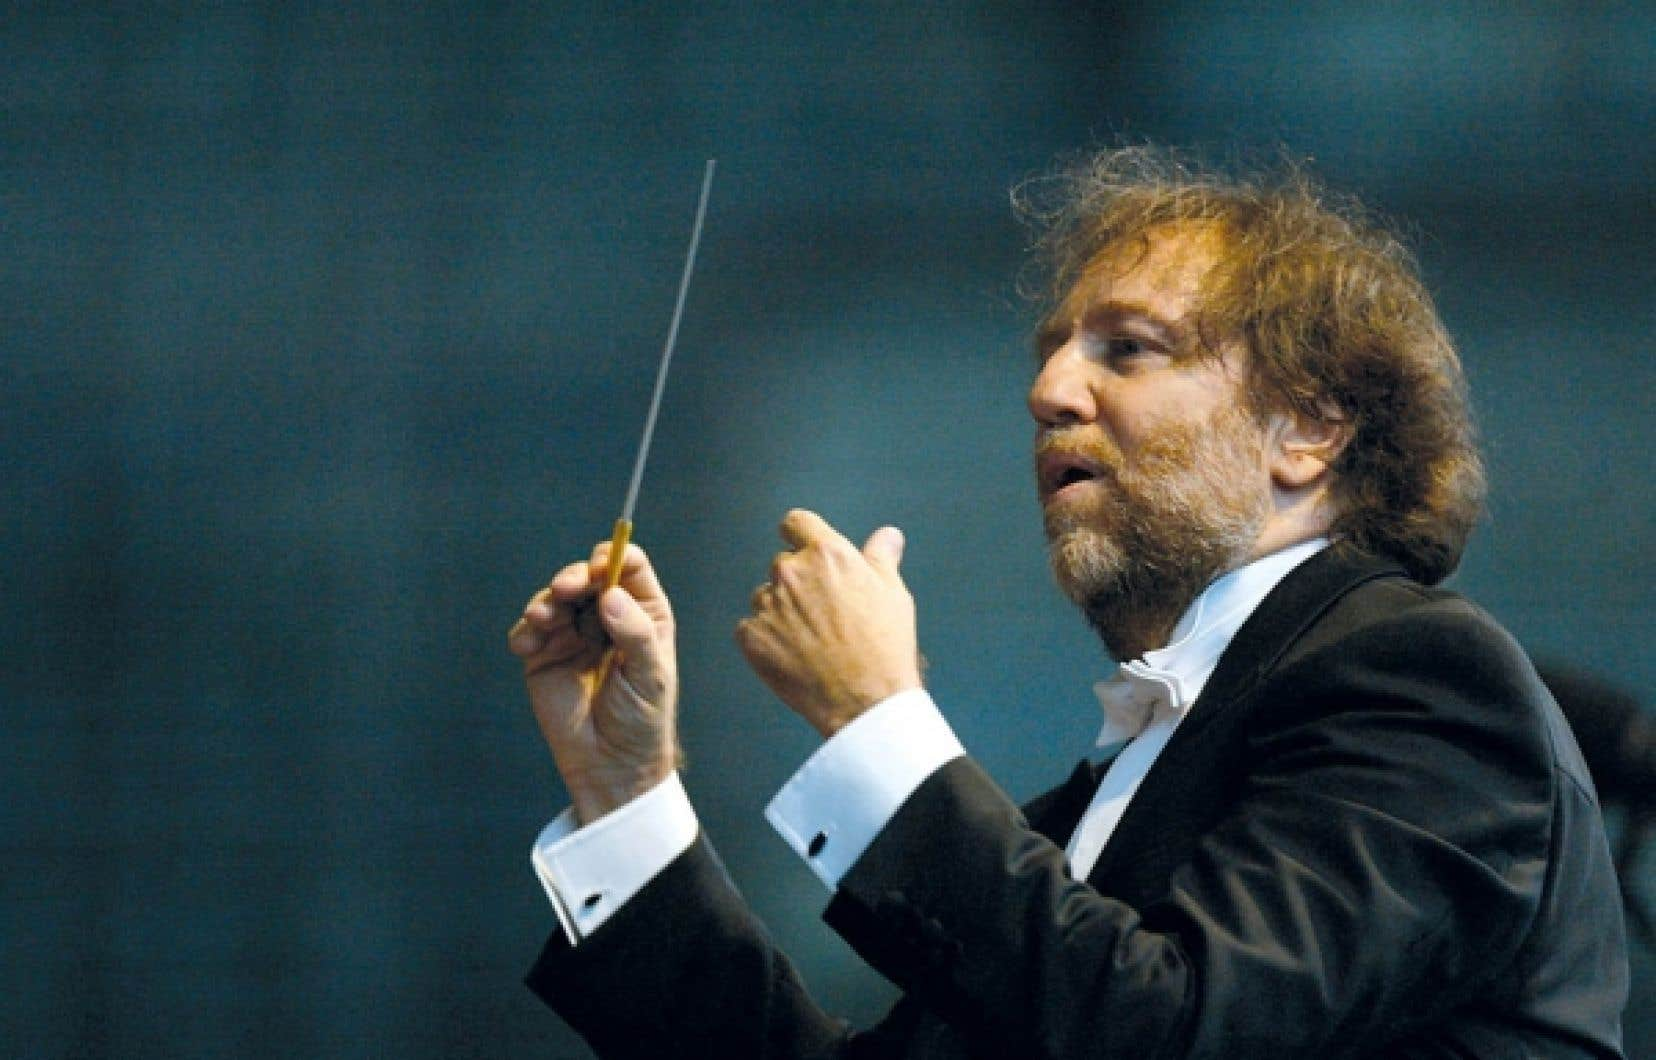 Le chef d'orchestre italien Riccardo Chailly<br />